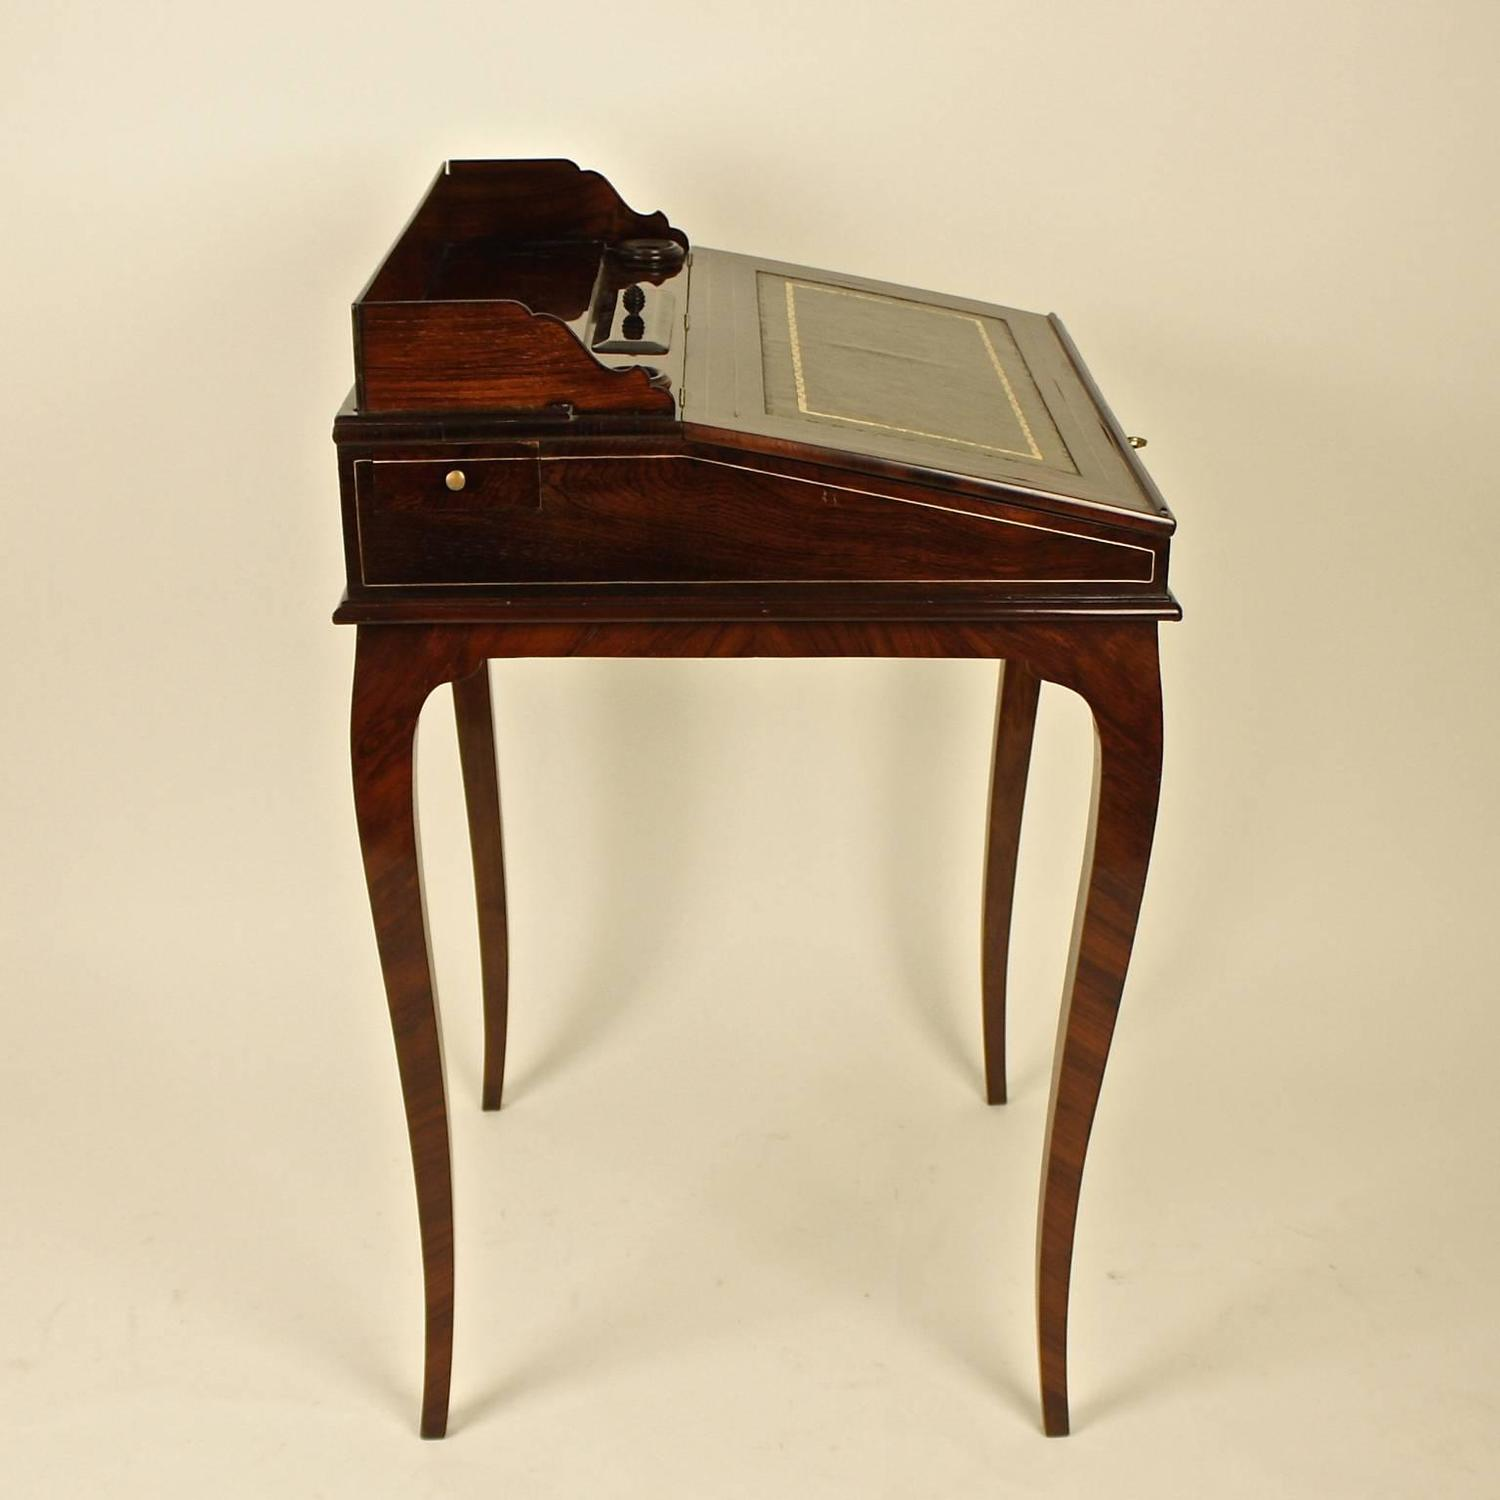 #34180B Small 19th Century Mahogany Bonheur De Jour Or Ladie's Desk For Sale  with 1500x1500 px of Recommended Small Ladies Writing Desk 15001500 save image @ avoidforclosure.info